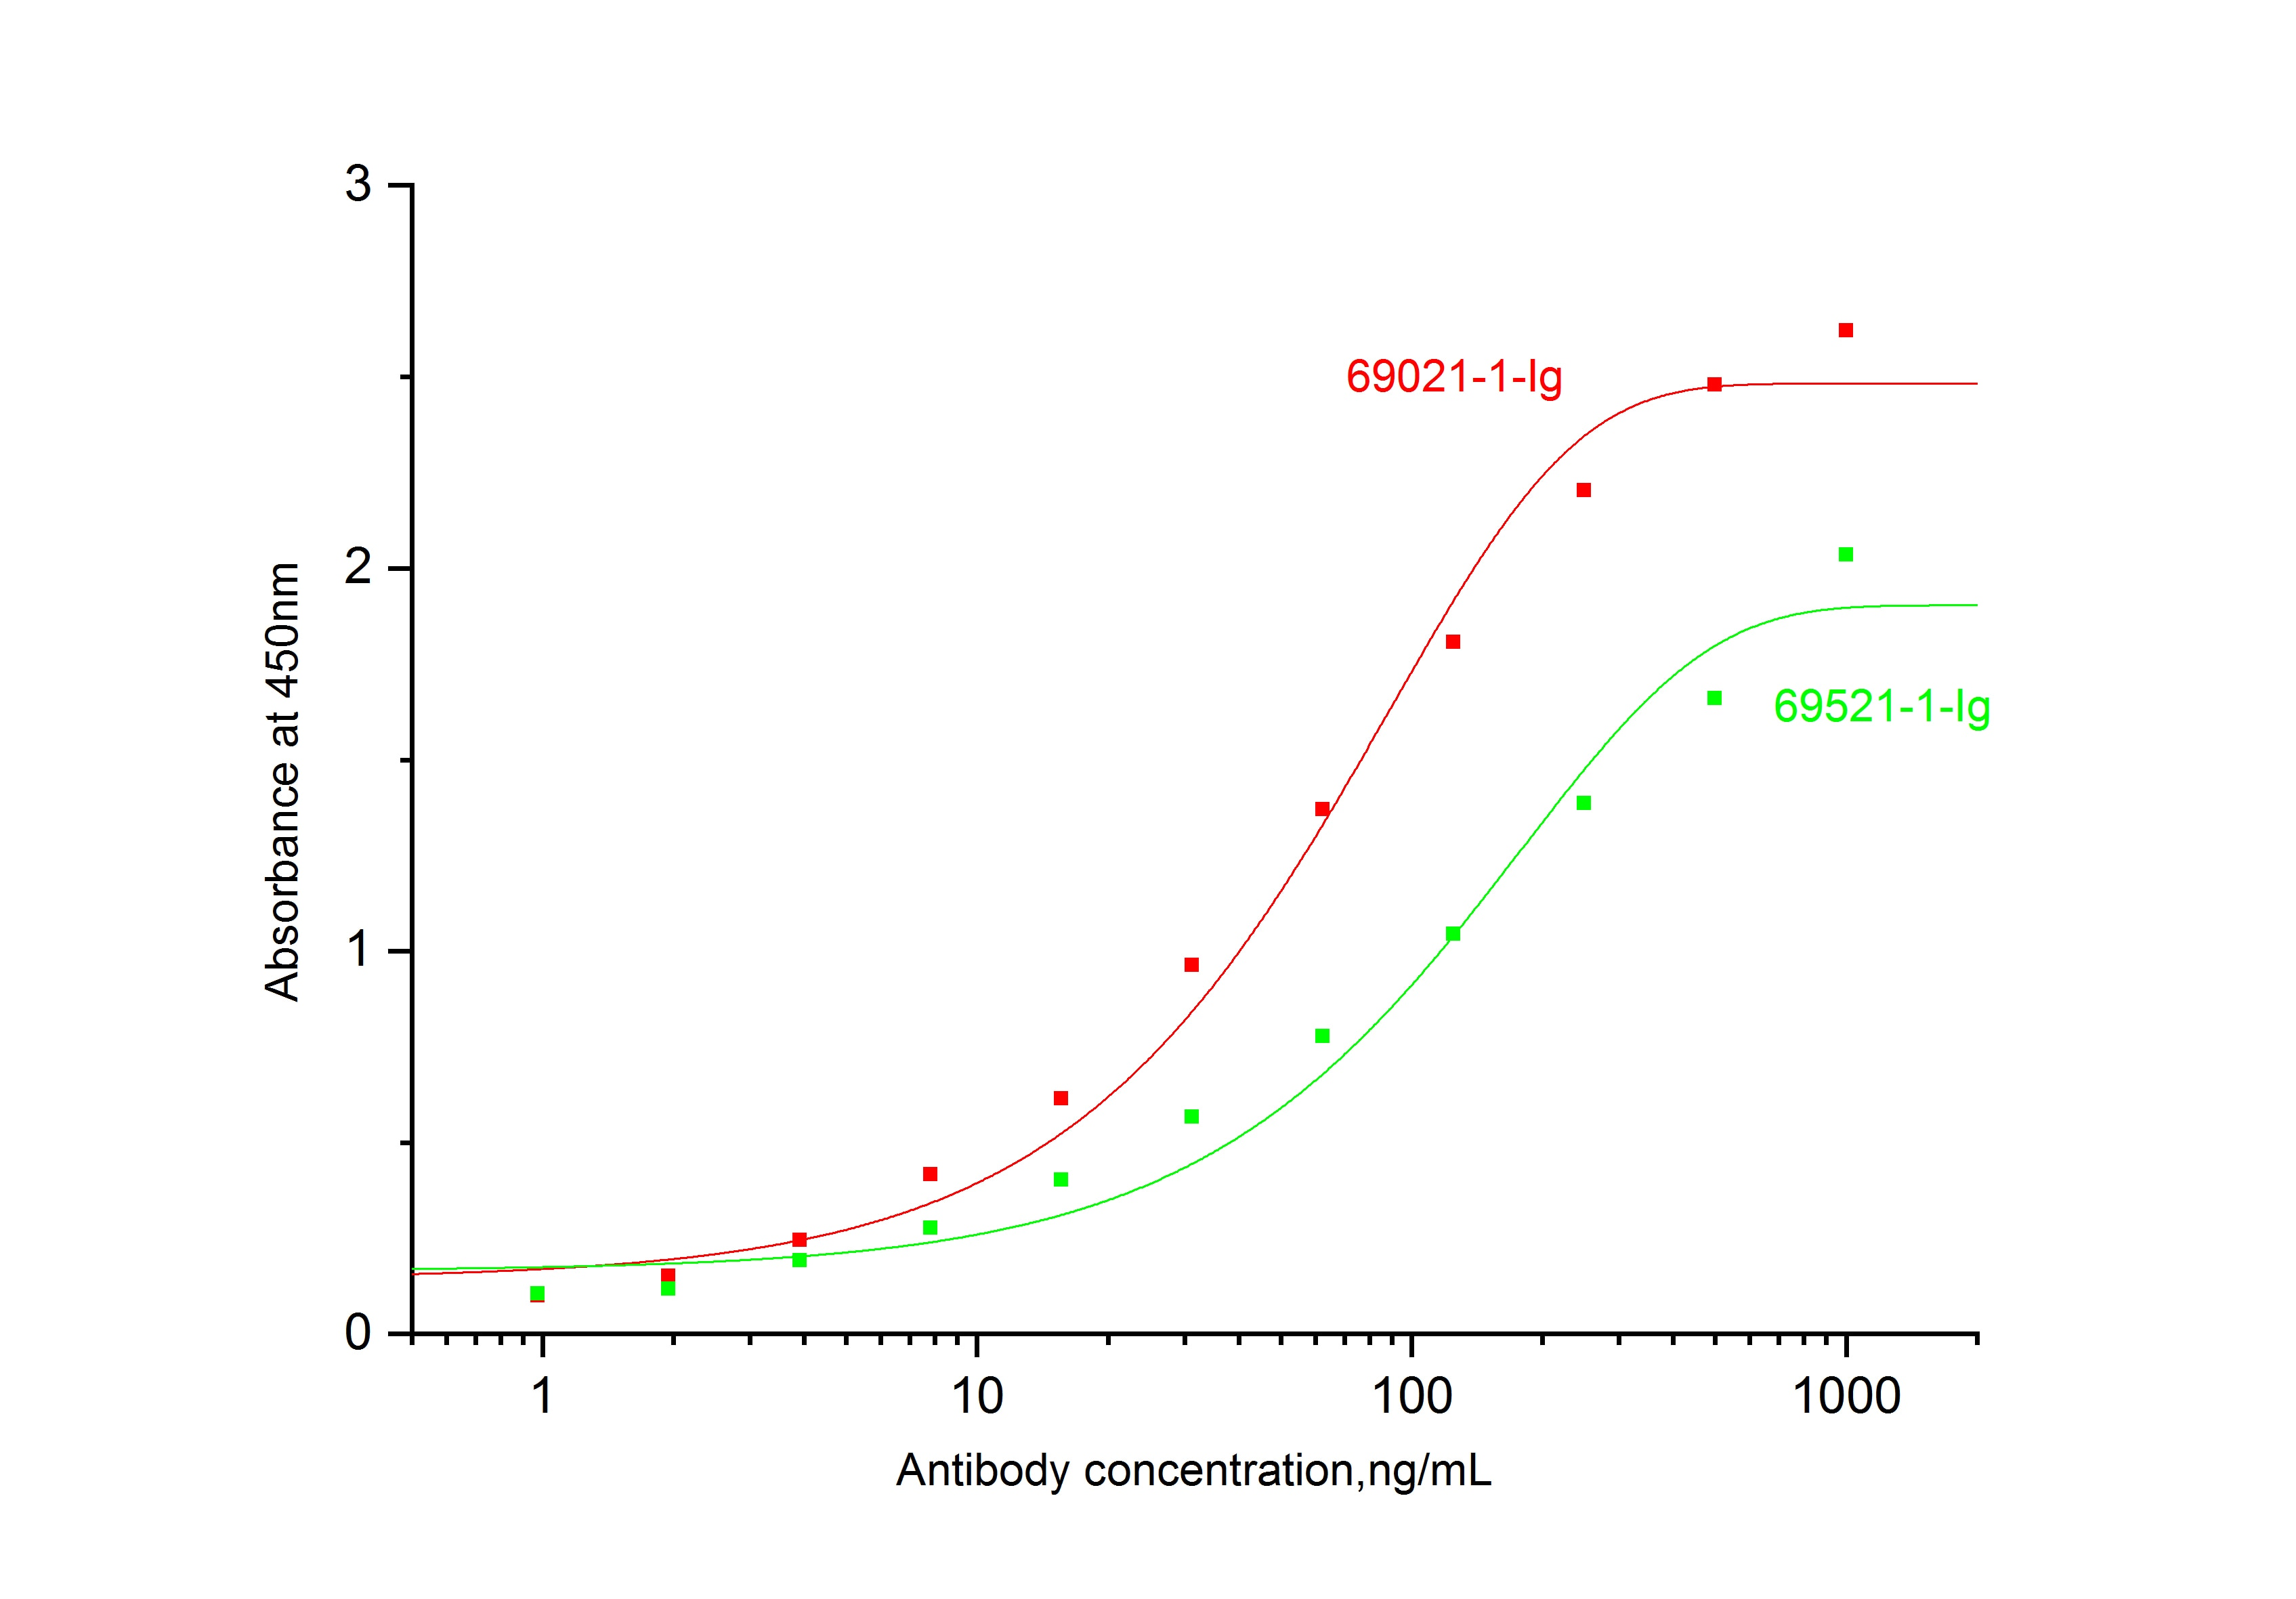 ELISA experiment of Recombinant protein using 69021-1-Ig